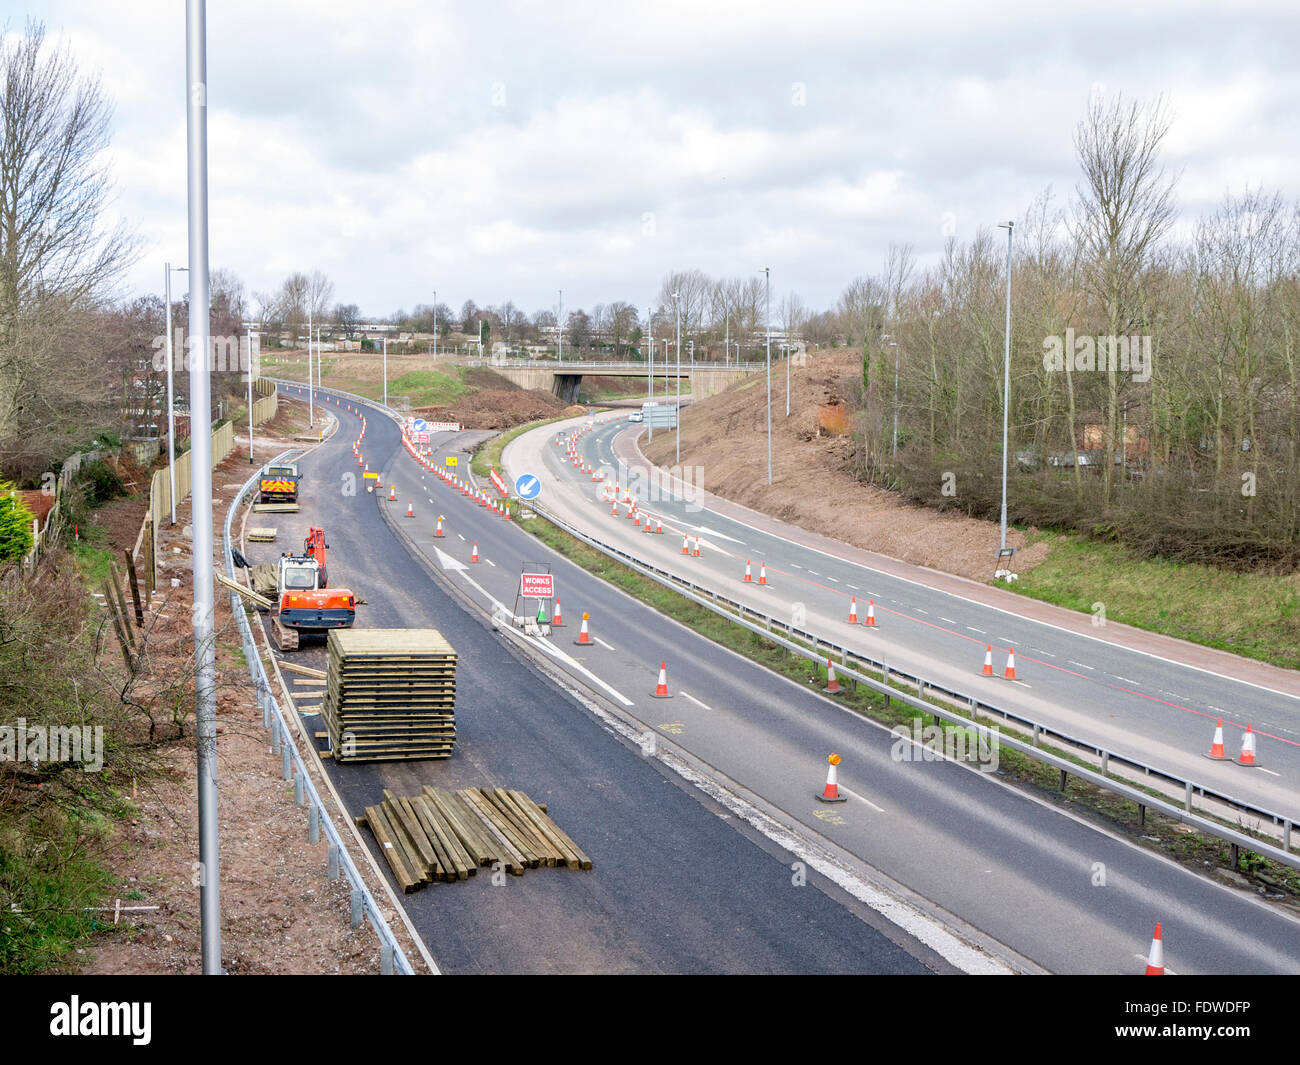 Construction of a new road layout with a digger and coned off area of dual carriageway. - Stock Image